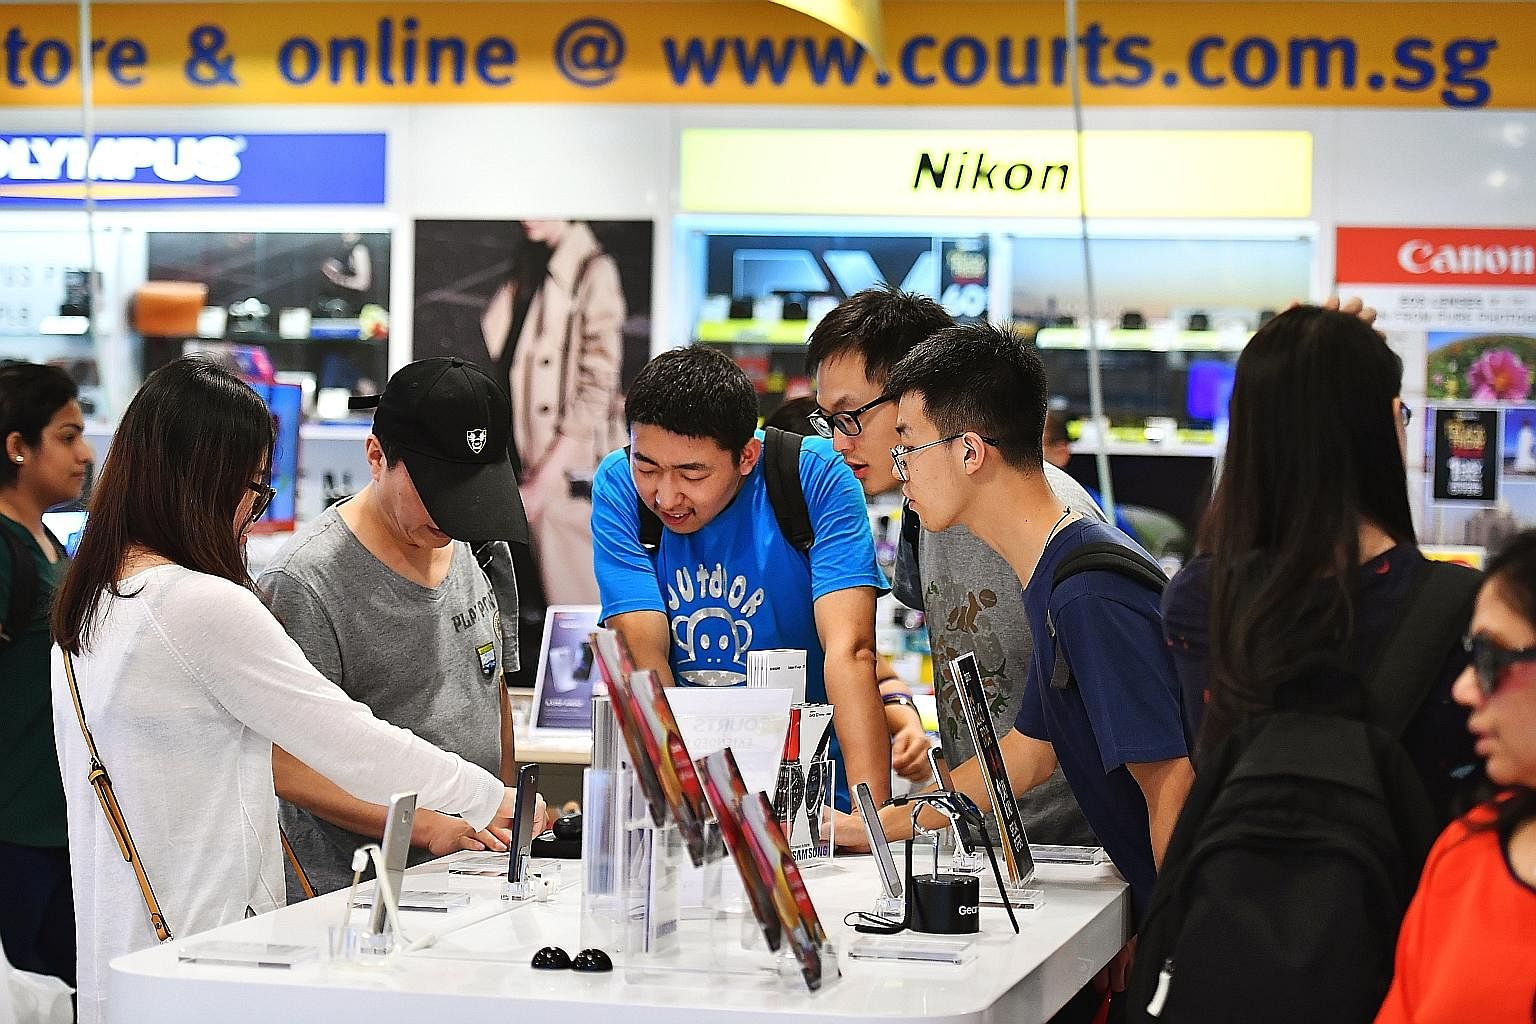 Courts' Black Friday sale covered all 14 outlets, including Courts Orchard (above), as well as its online store. The furniture chain also introduced a priority pass this year that let 280 pre-registered shoppers skip the queue. Shoppers at the Robins